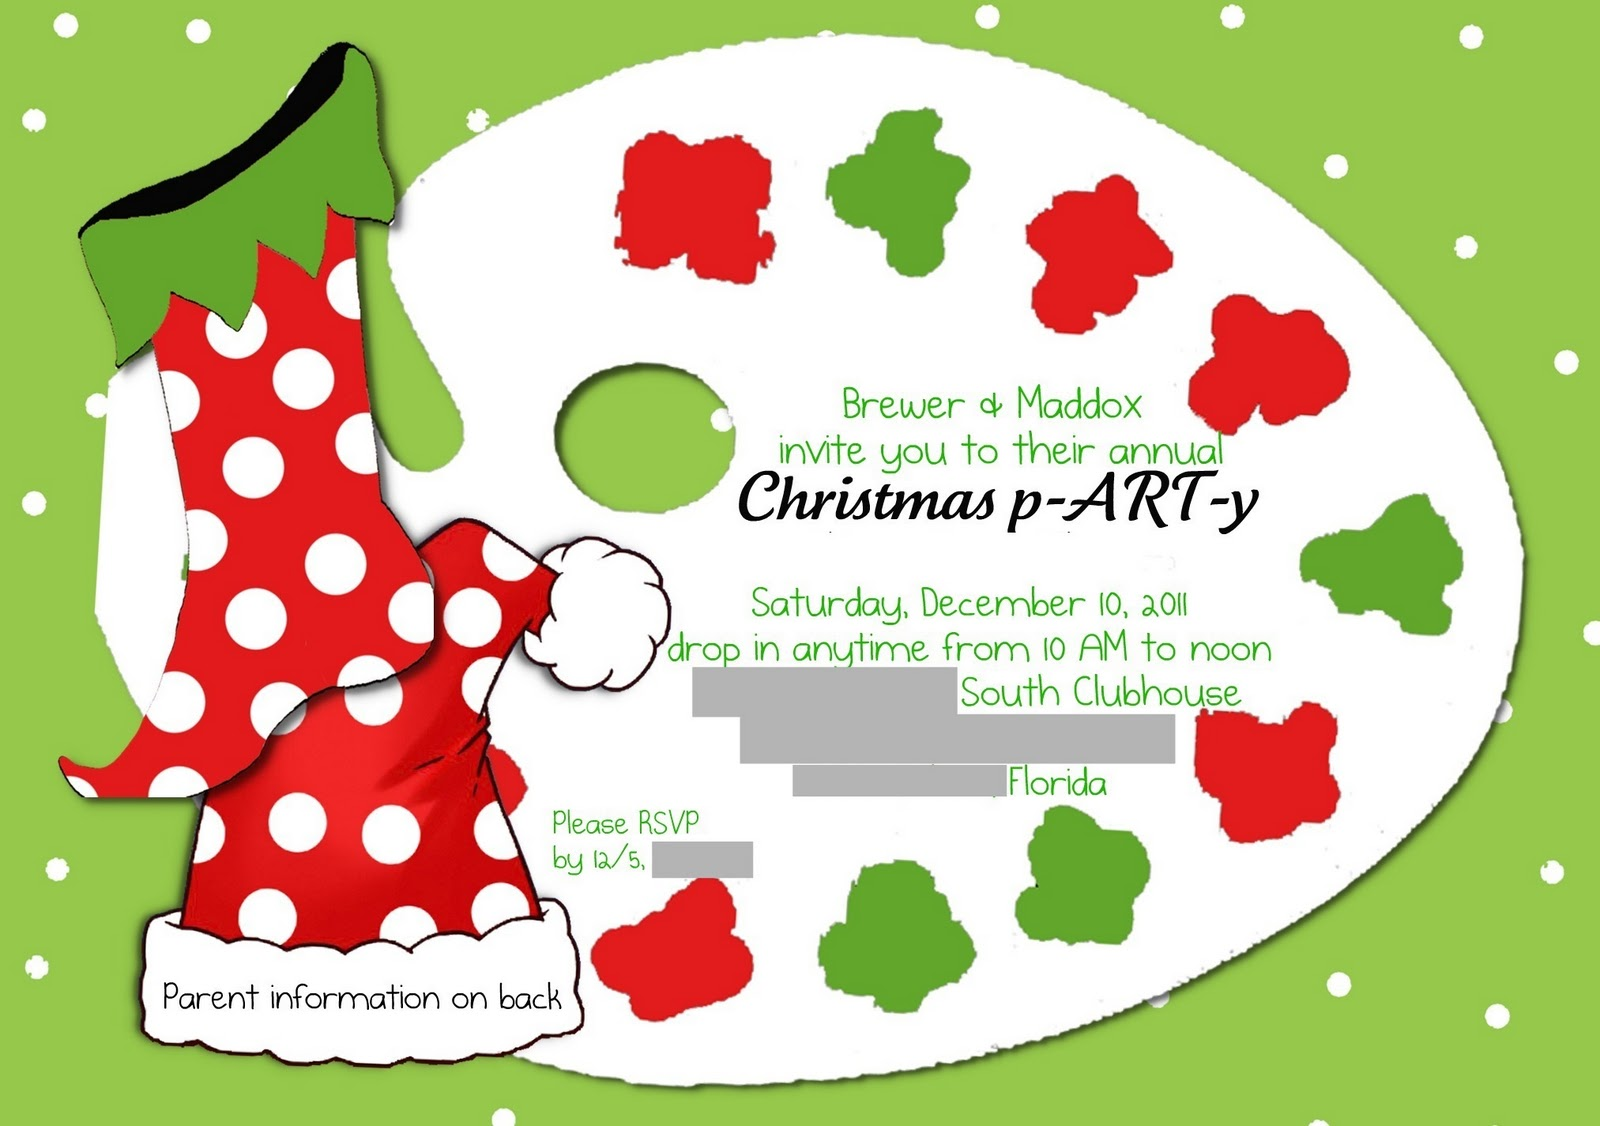 we invite our friends 8 years of age and under and their parents to come celebrate christmas with us this year it was an art themed party